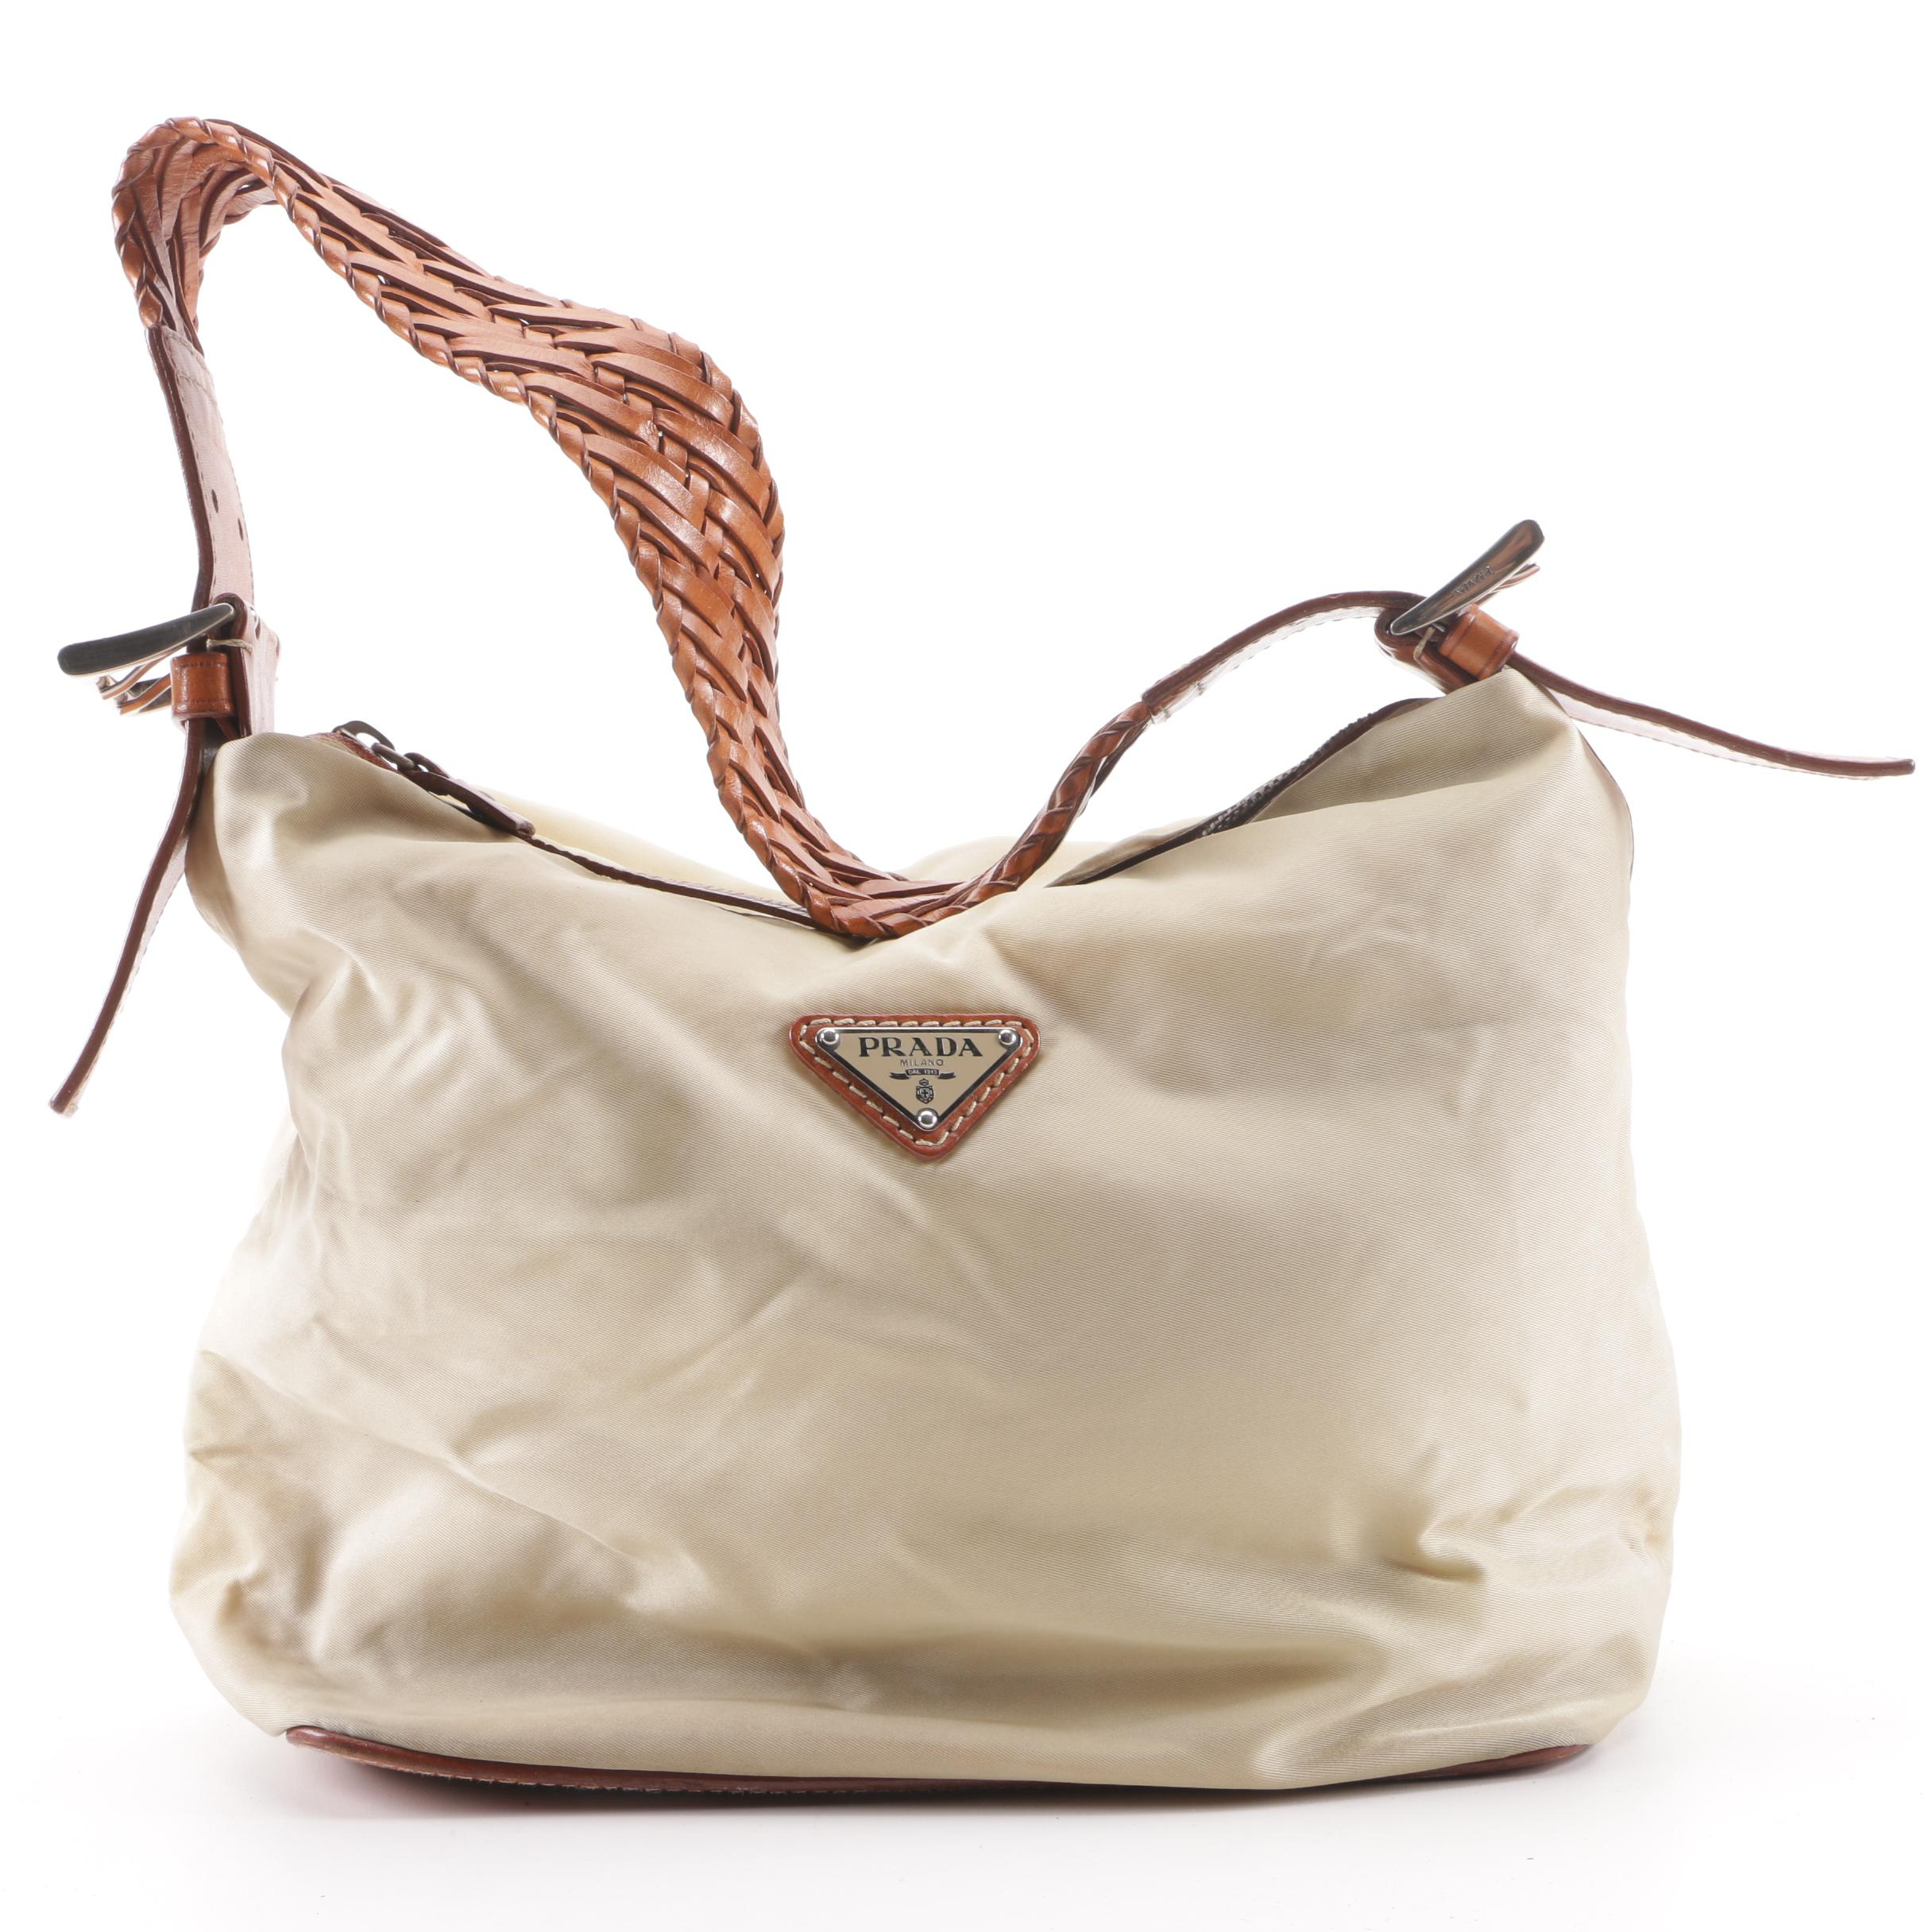 7d2f587816fd ... authentic prada beige nylon and woven leather shoulder bag ebth 4aa2f  7f5e1